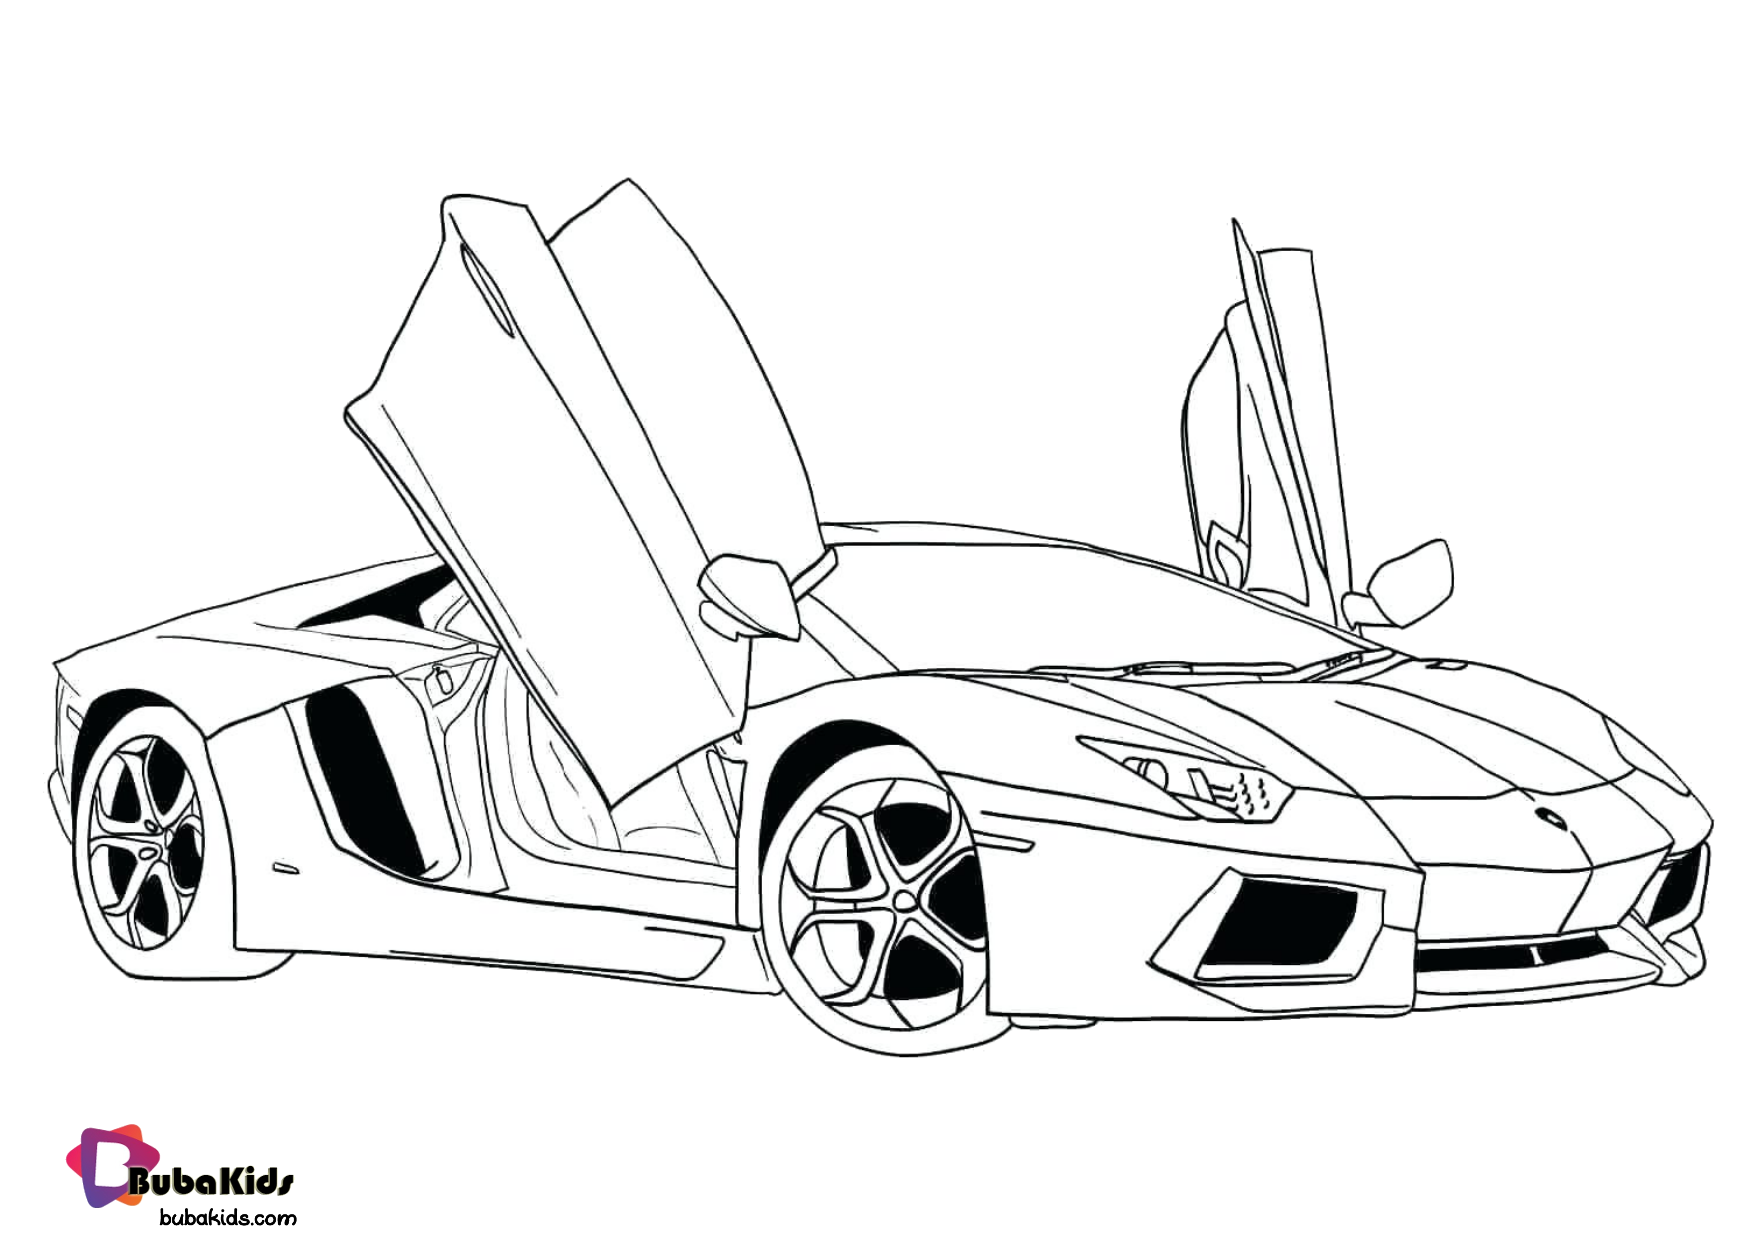 Free Download Super Car Coloring Pages For Kids Collection Of Cartoon Coloring Pages For T In 2020 Cars Coloring Pages Coloring Pages For Boys Race Car Coloring Pages